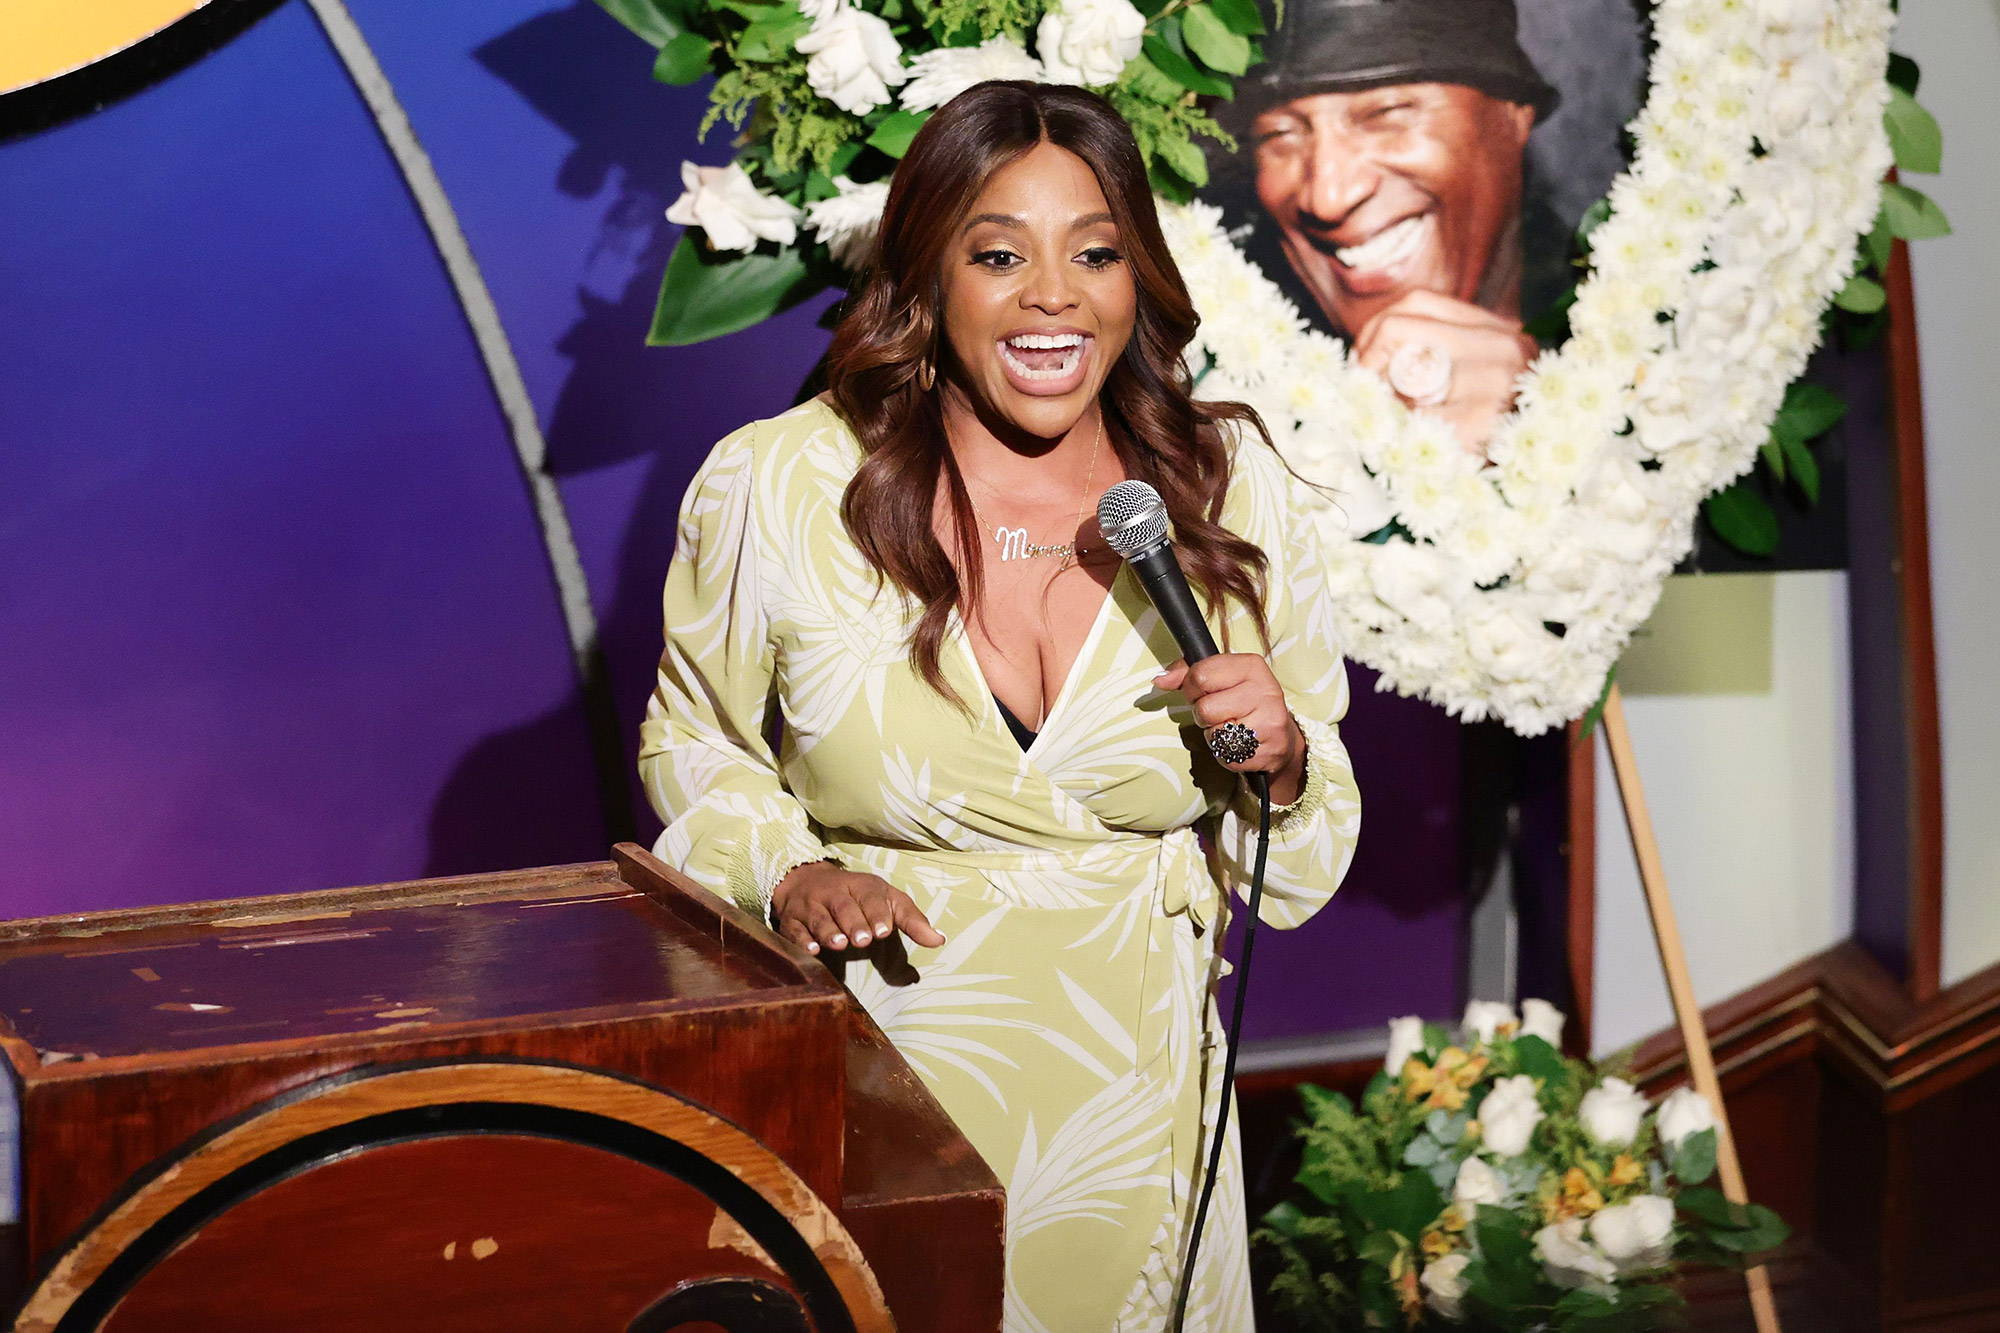 Sherri Shepherd speaks during the Paul Mooney Tribute Show at The Laugh Factory on May 27, 2021 in West Hollywood, California